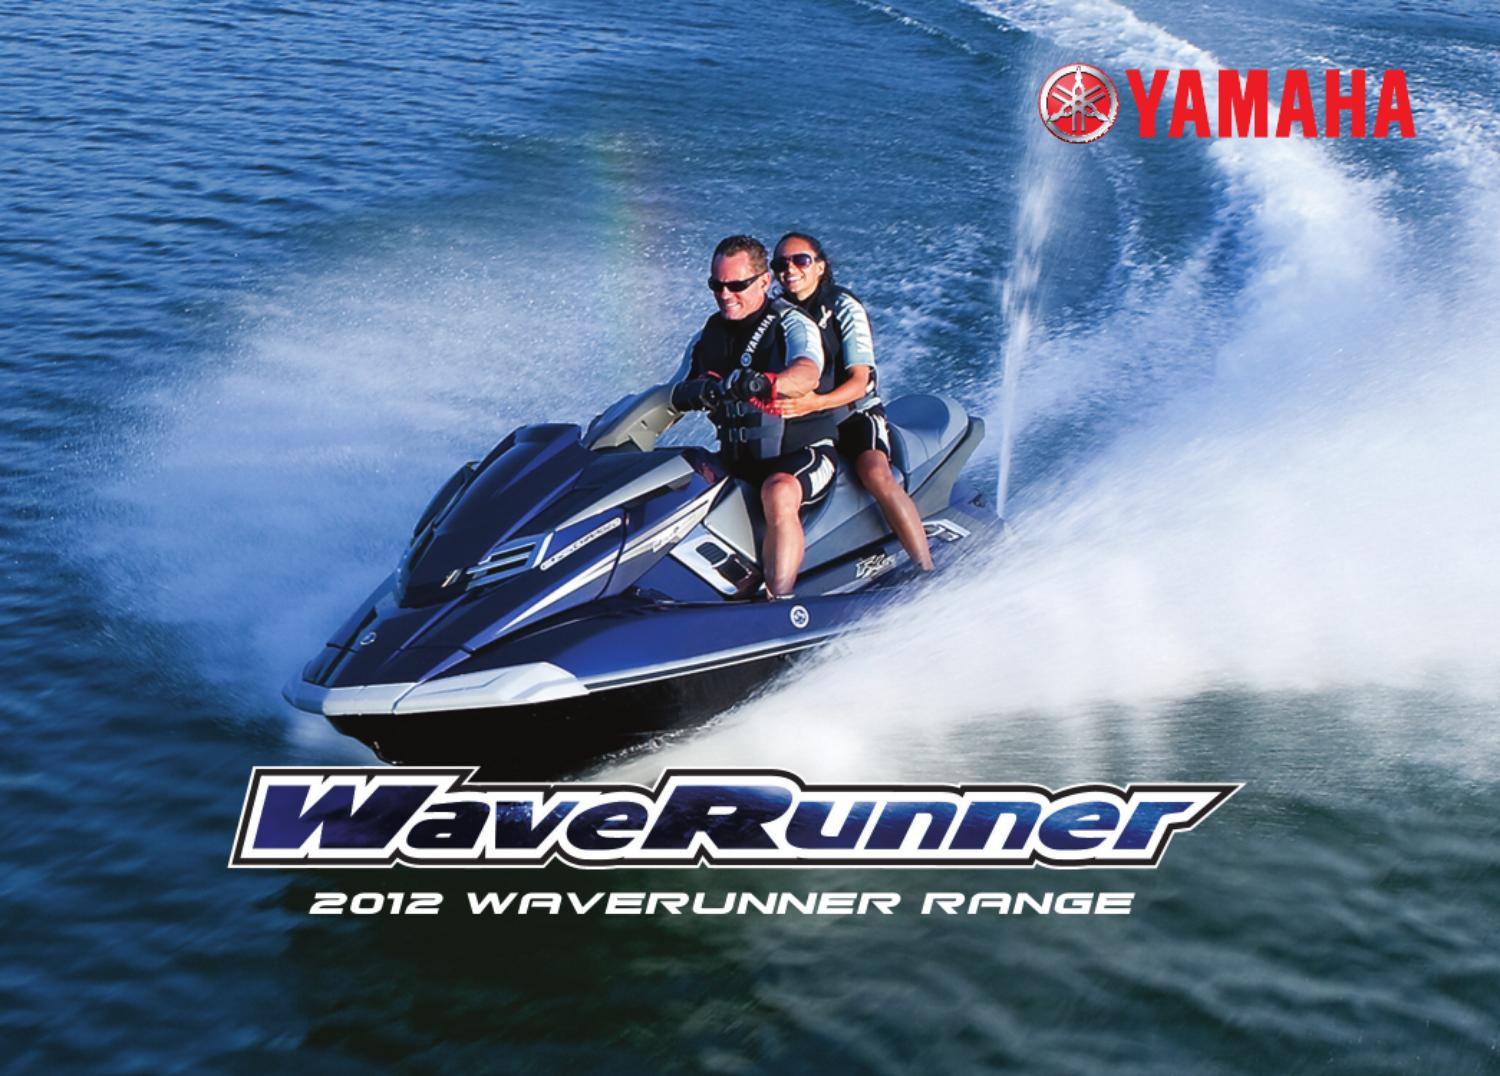 2012 yamaha waverunner brochure by issuu for 2012 yamaha waverunner